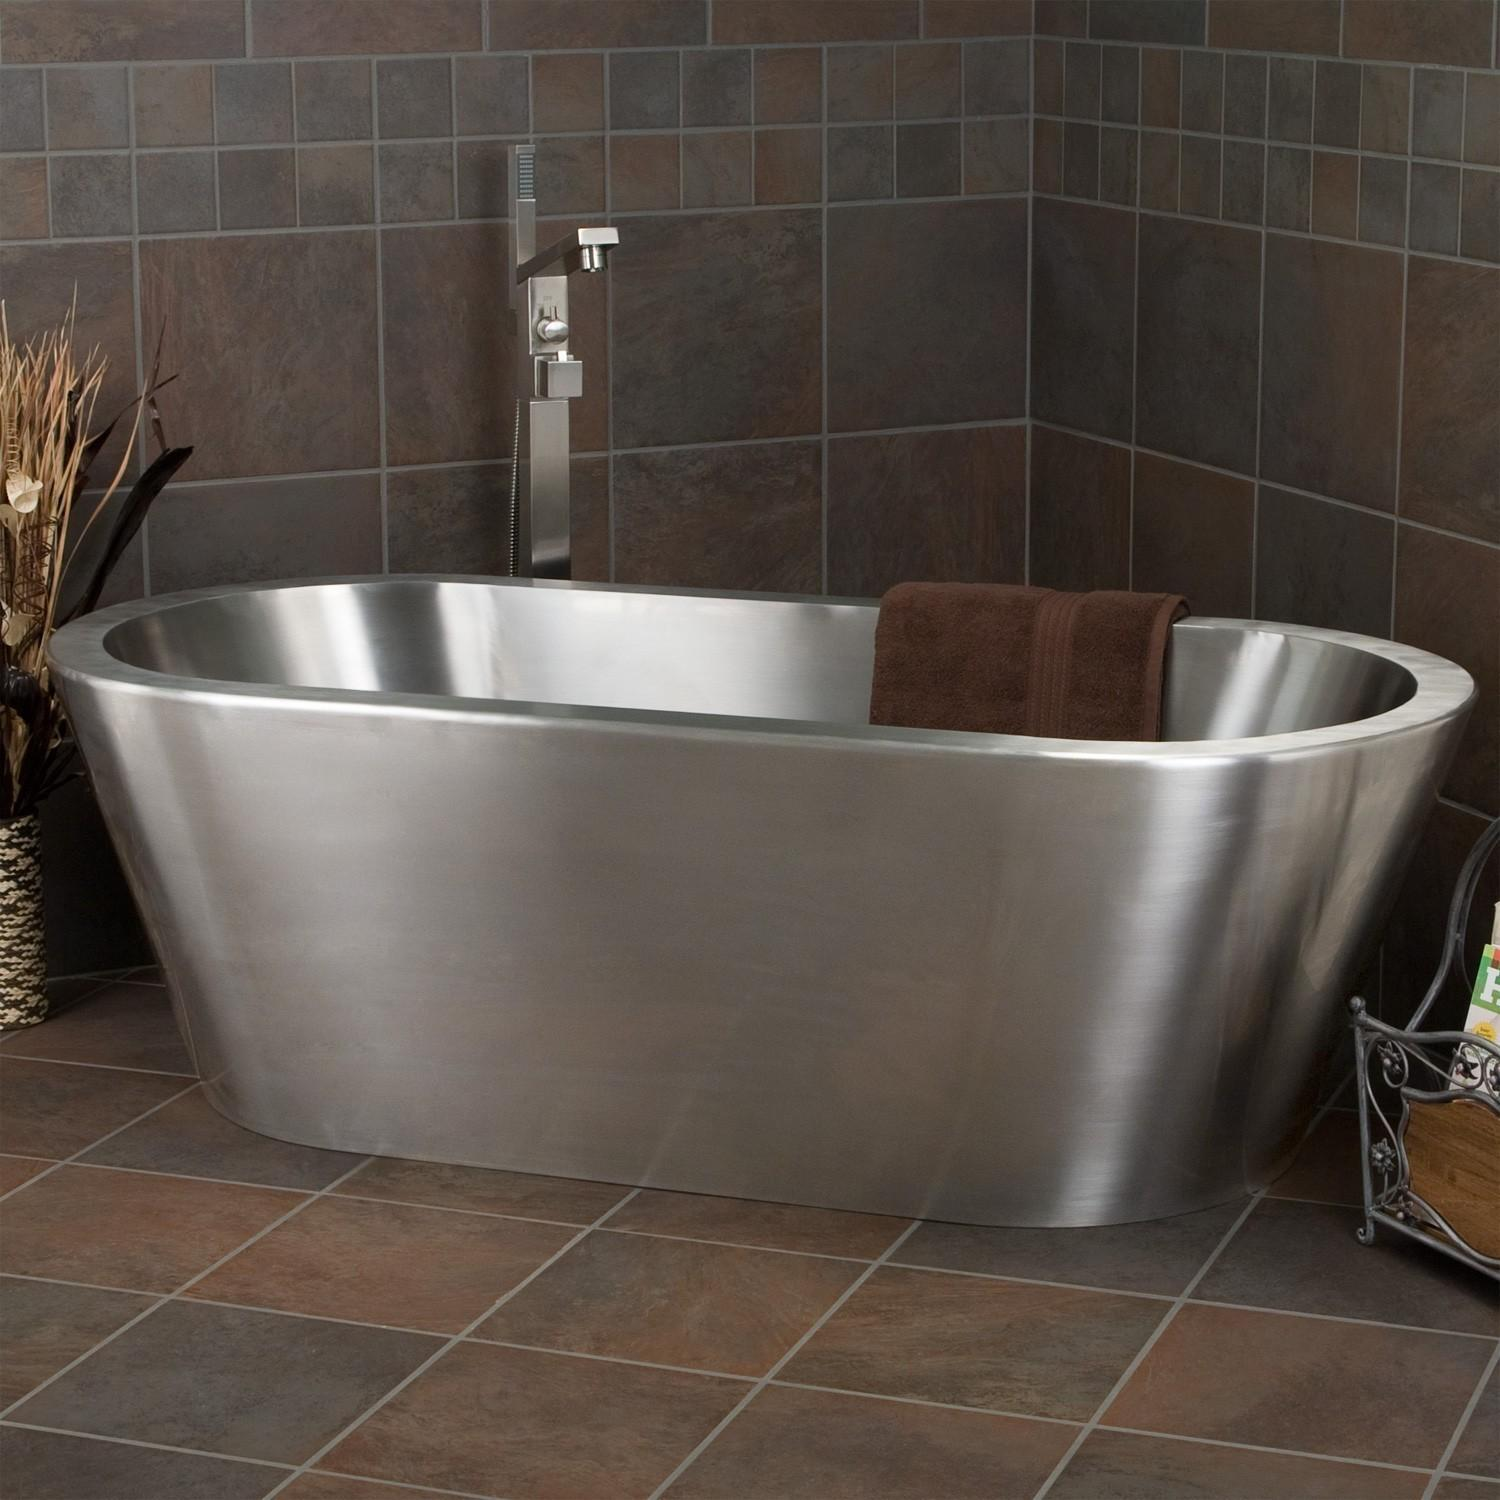 Brushed Stainless Steel Freestanding Tub Single Tap